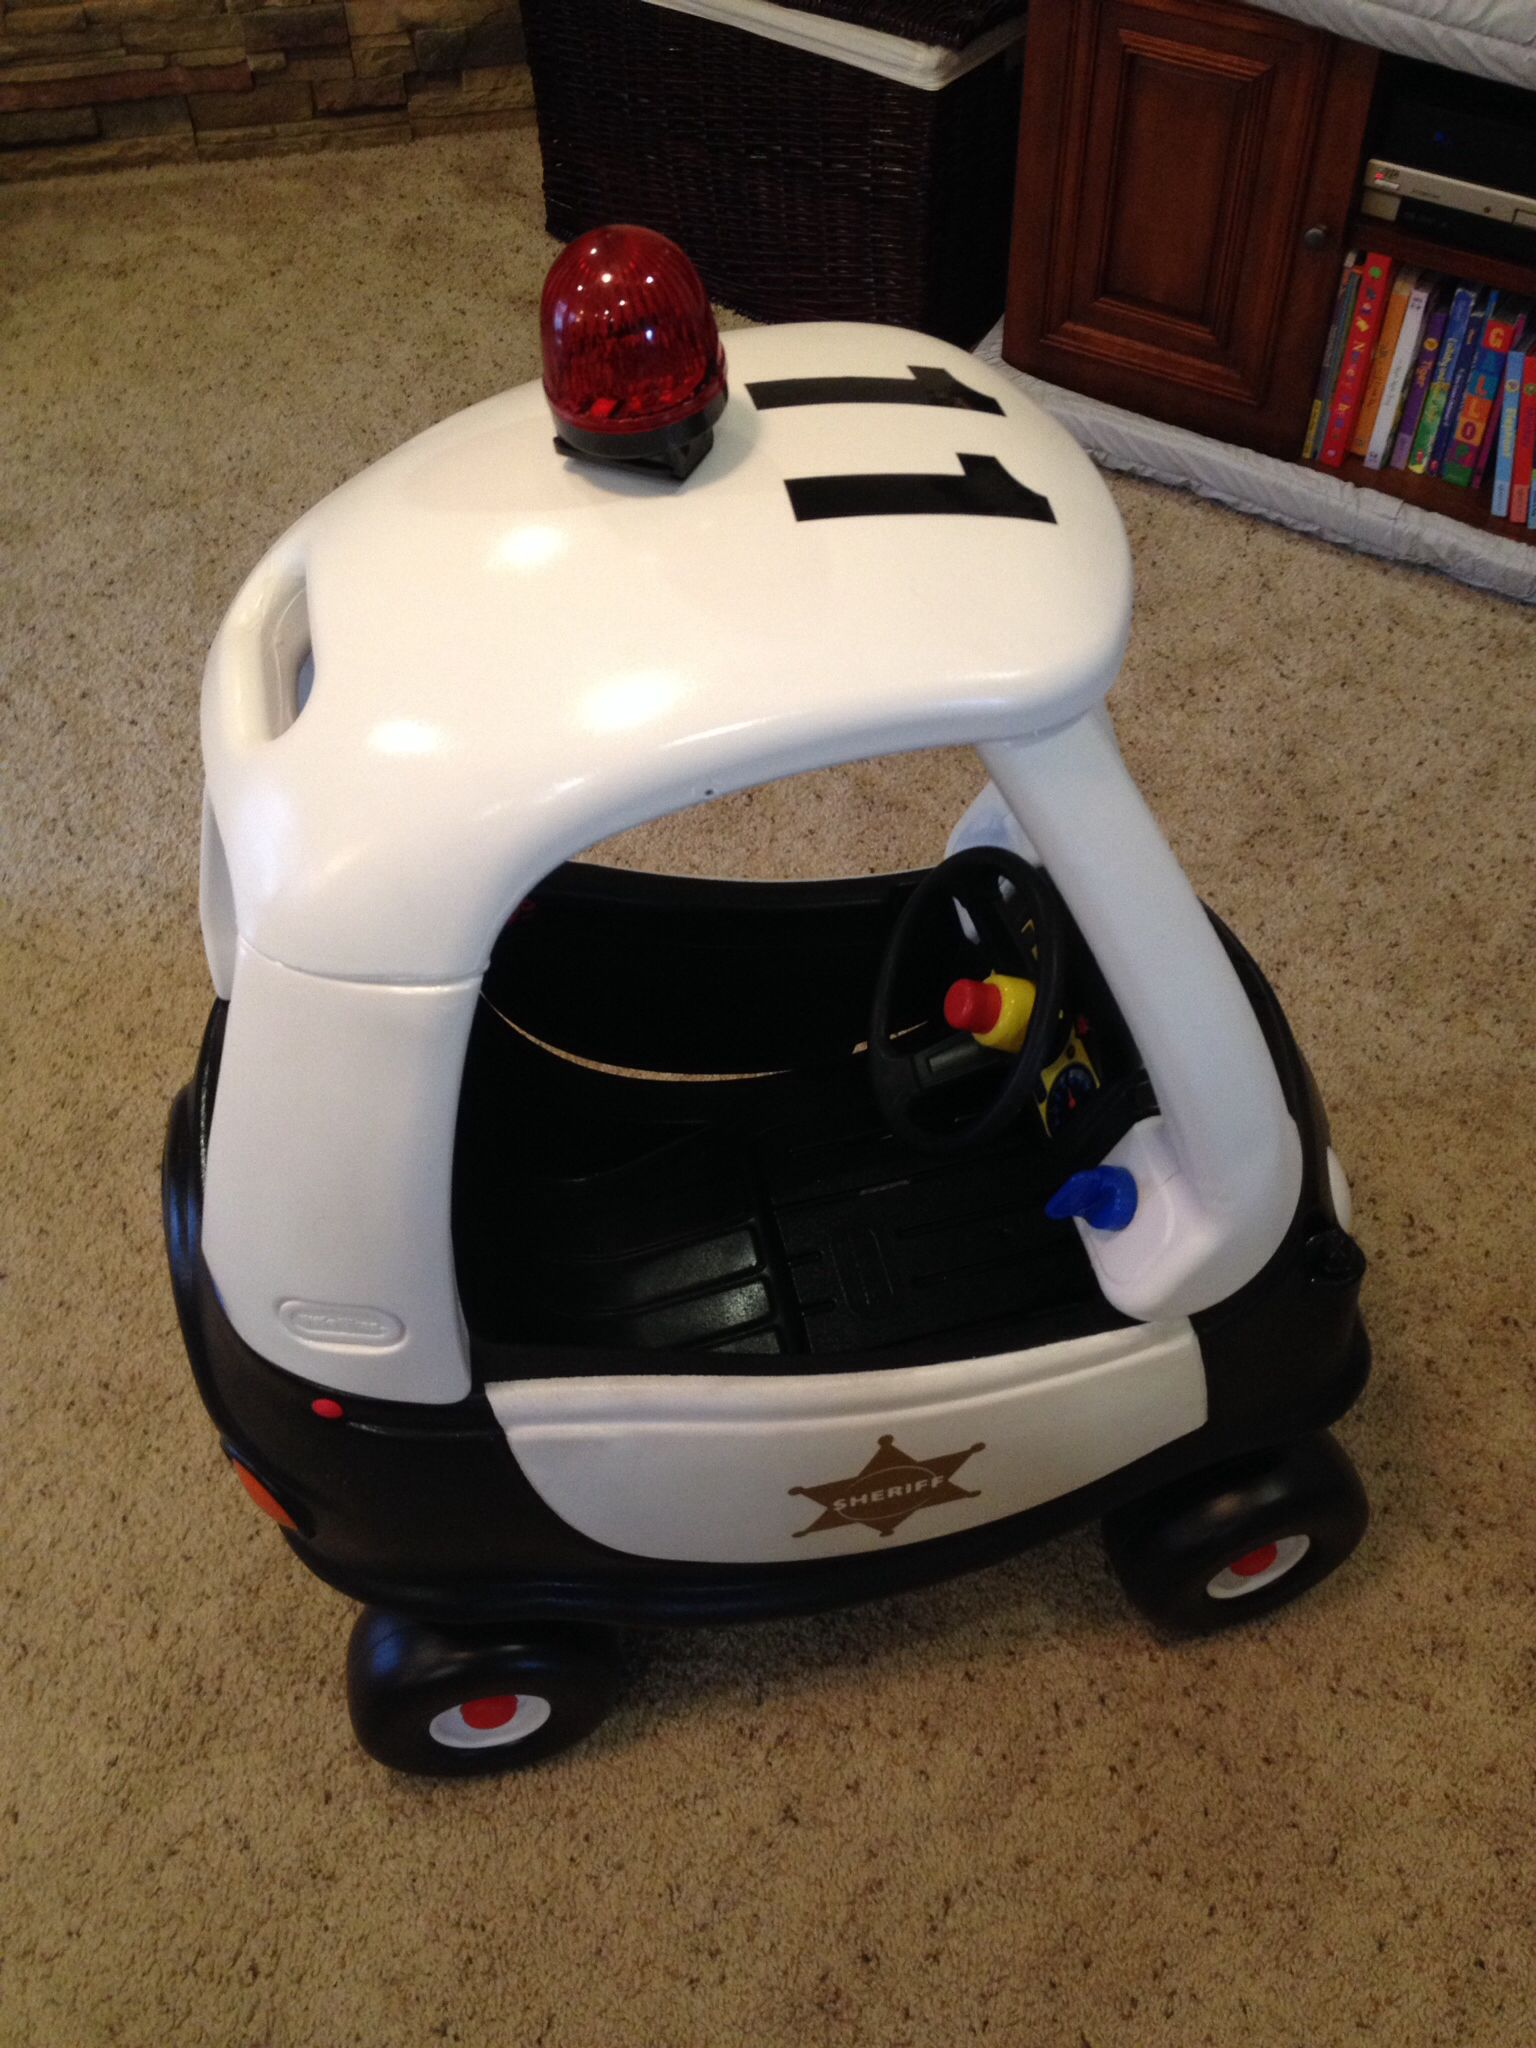 Cozy Coupe Makeover Into Cop Car Craft Ideas Pinterest Cozy